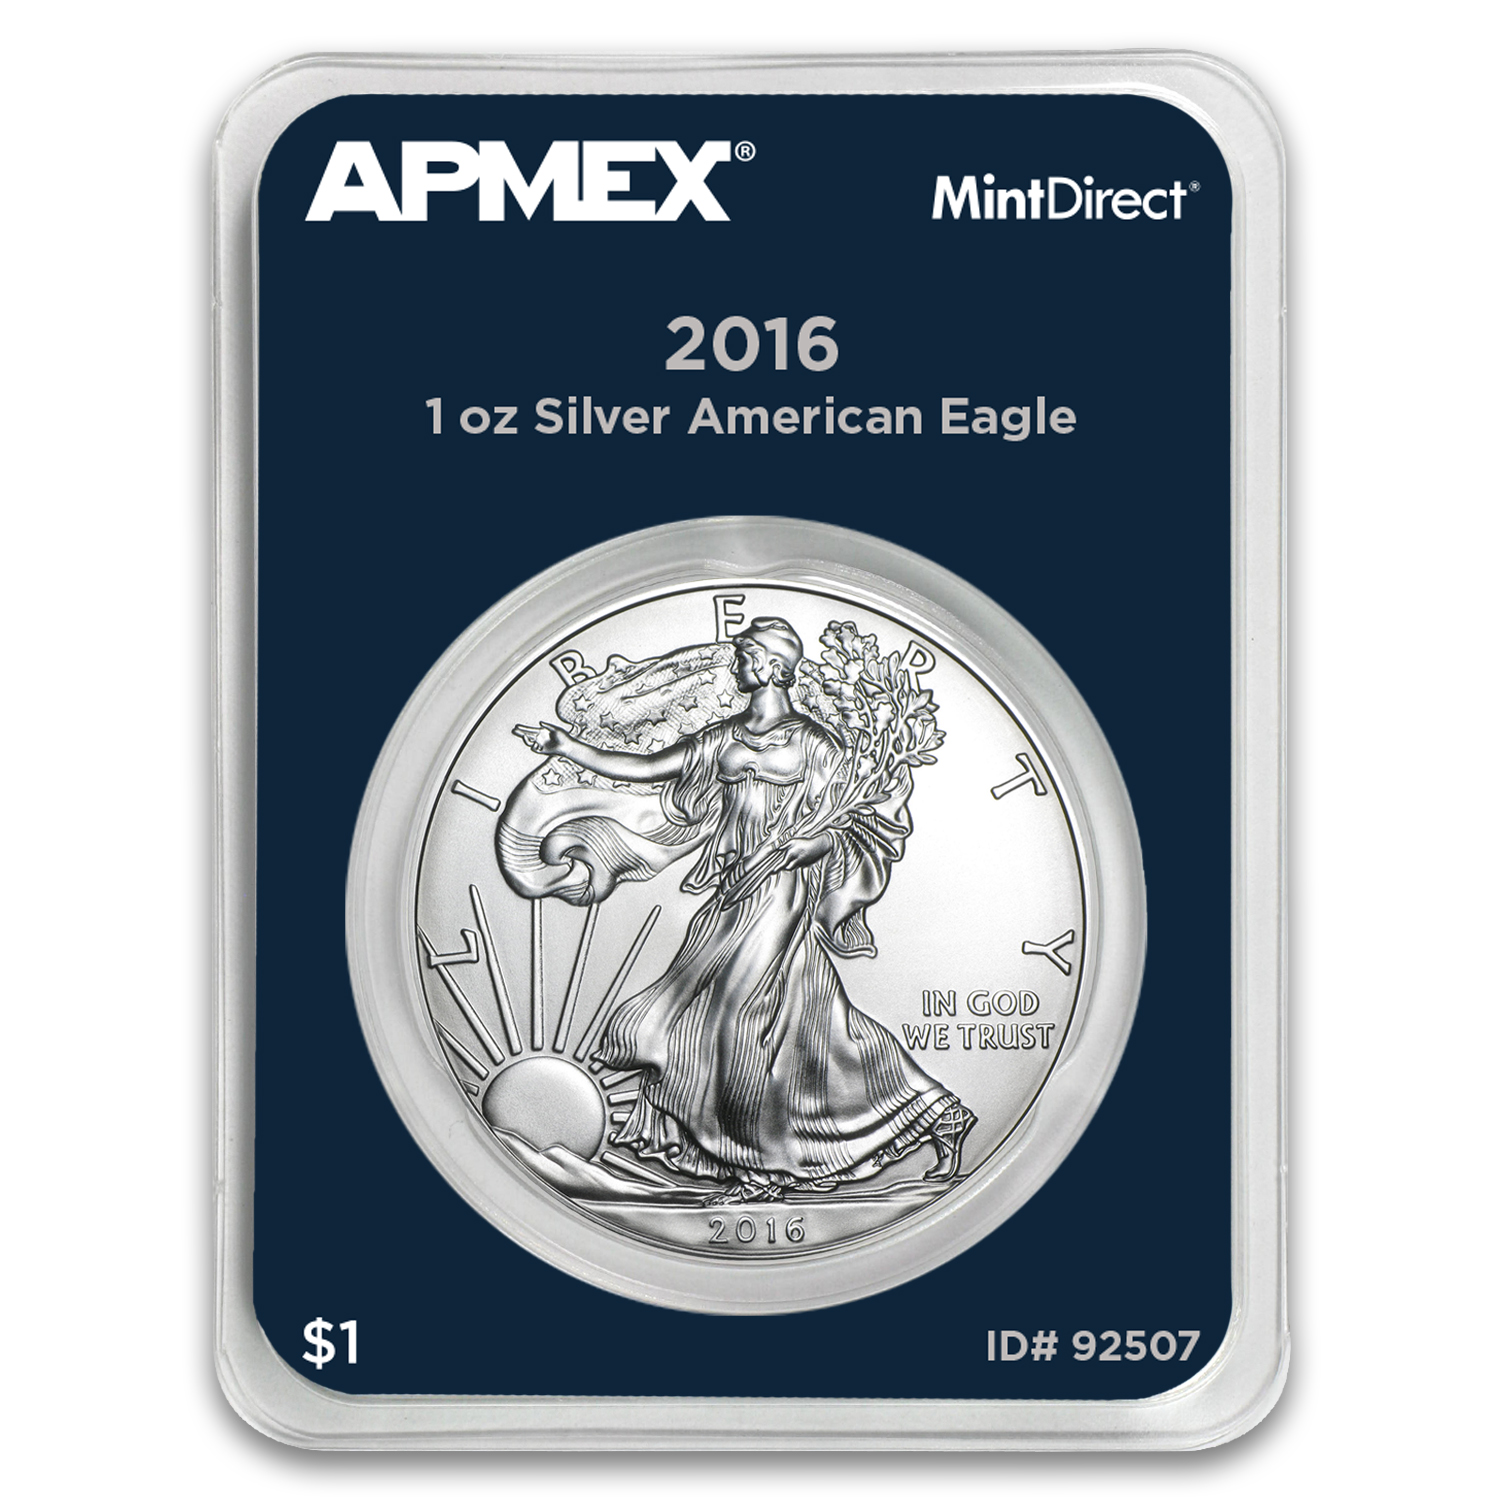 2016 1 oz Silver American Eagle (MintDirect® Single)